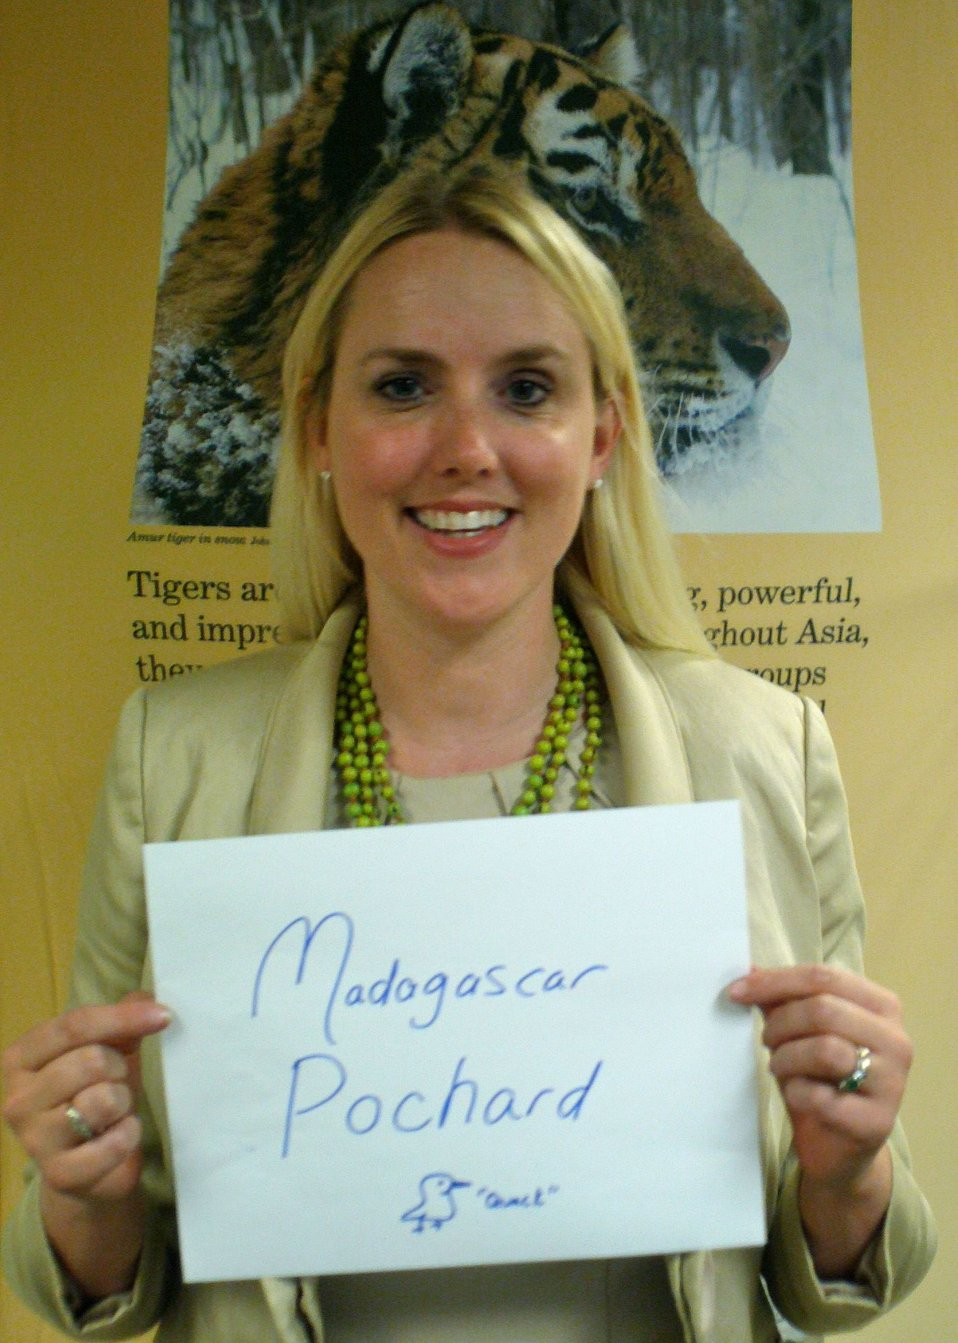 Tracy O'Toole, 'Madagascar Pochard,' Credit: USFWS